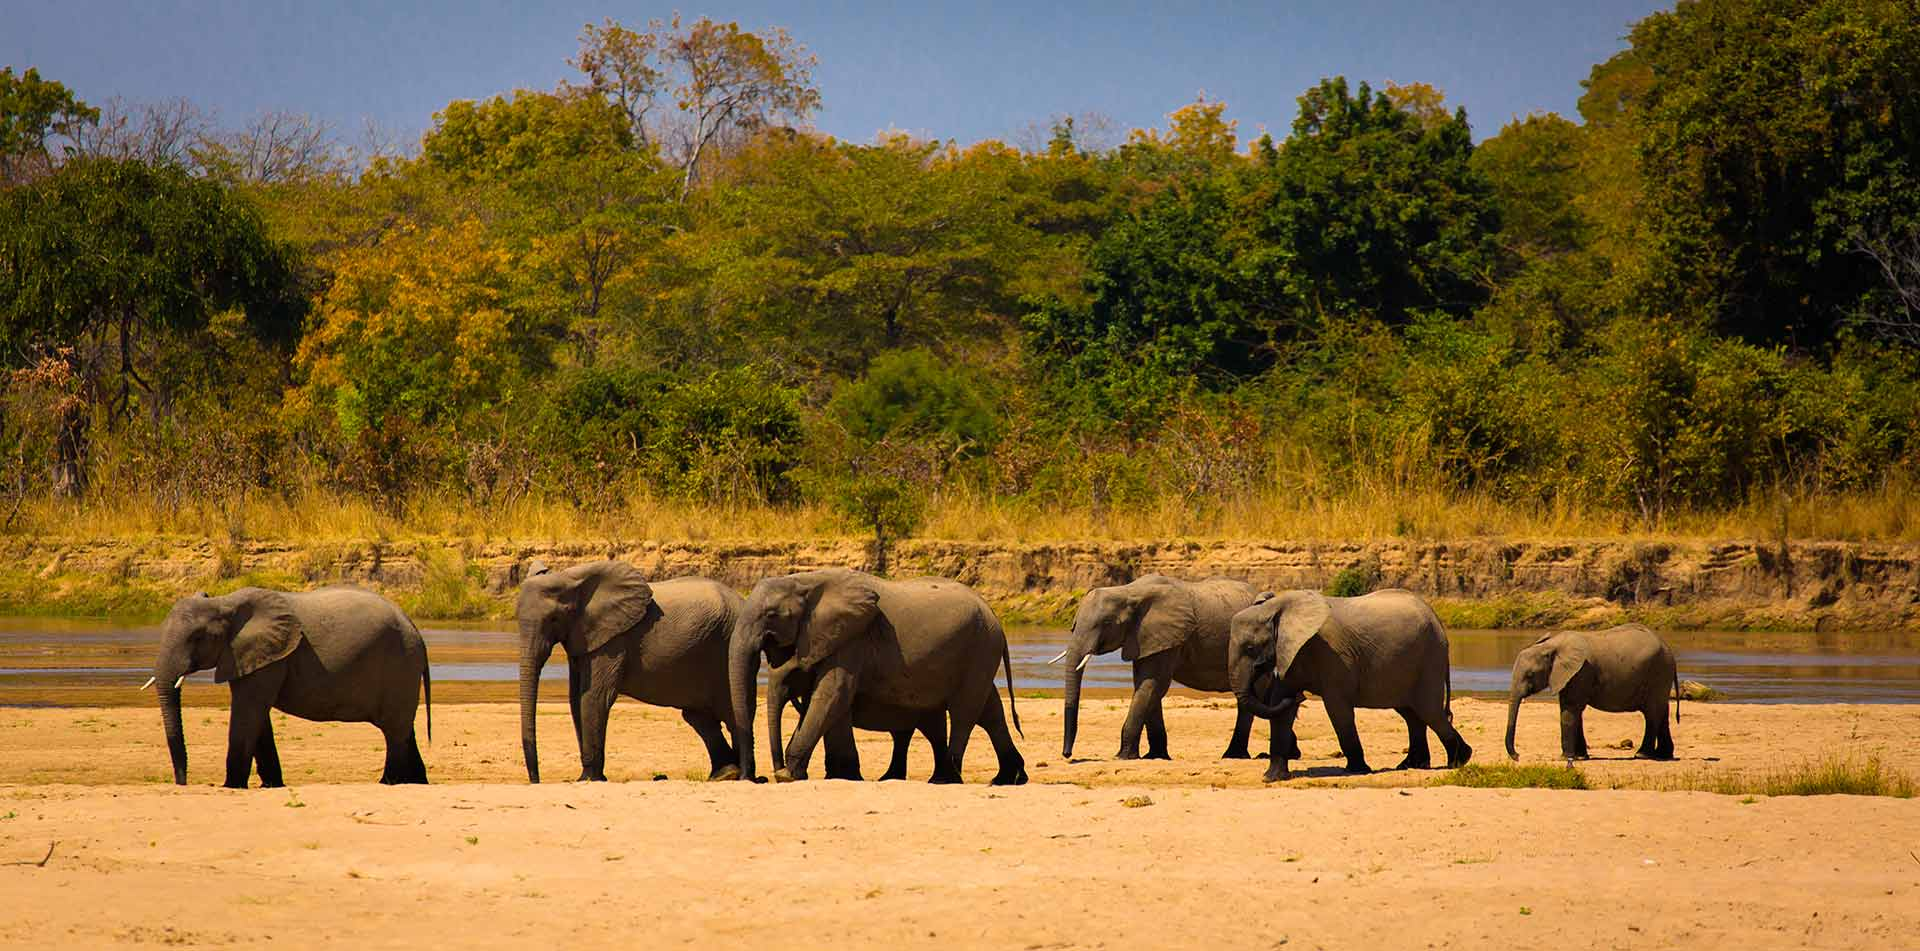 Africa Zambia Luangwa National Park safari wild elephant herd remote dry landscape - luxury vacation destinations